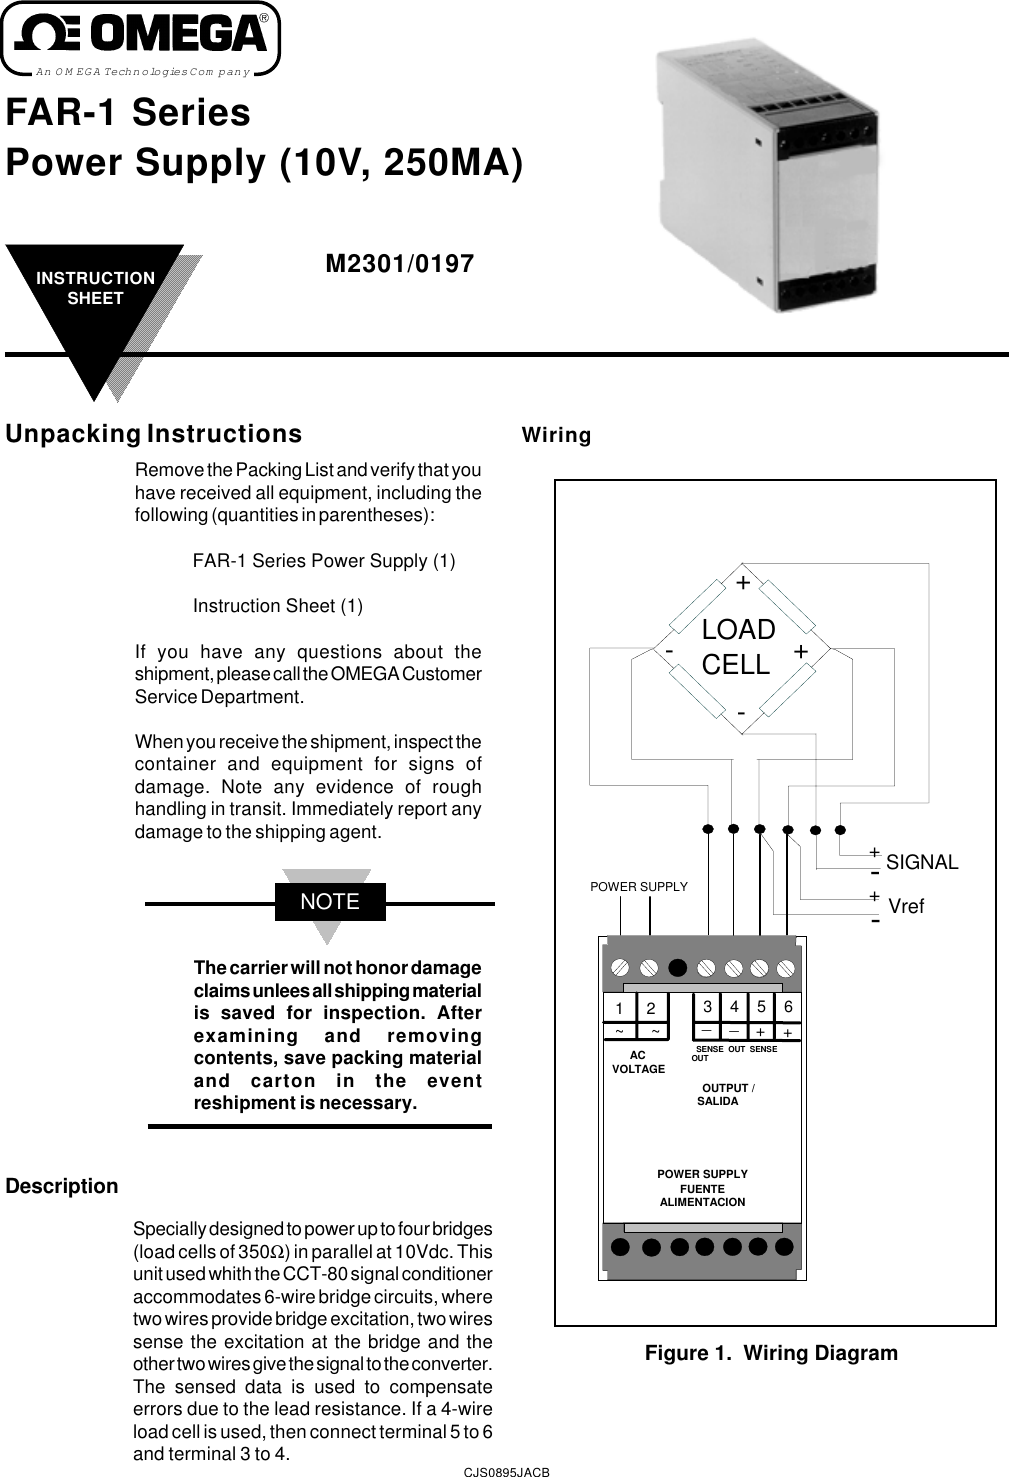 Omega Speaker Systems Far 1 Series Users Manual Power Supply 10v Wiring Diagram 250ma